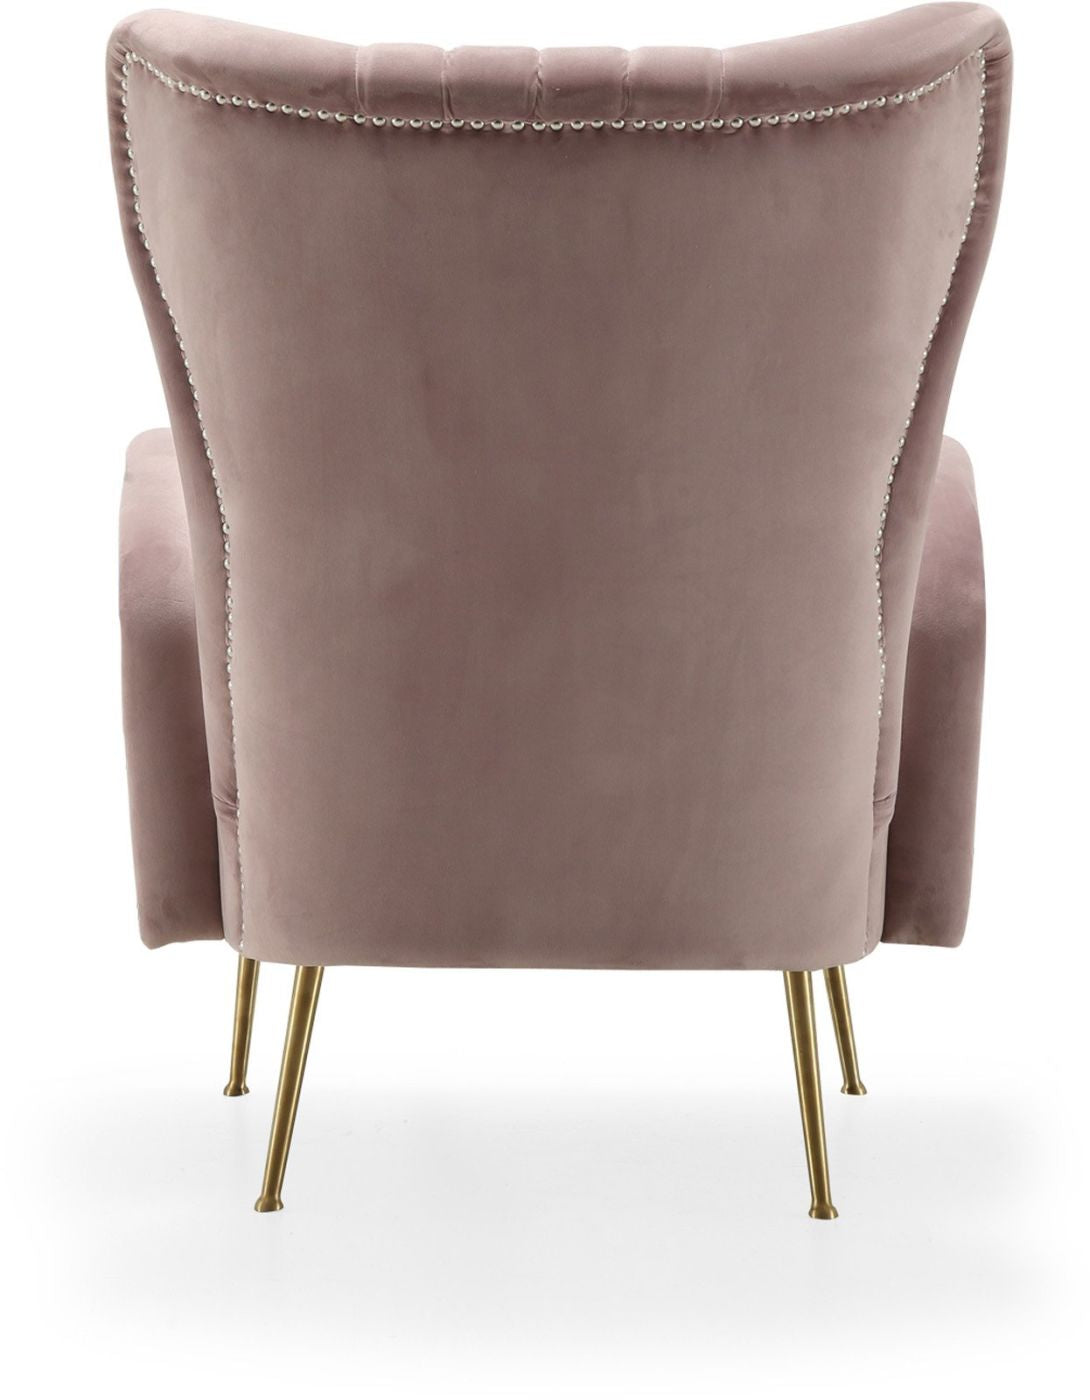 Awesome Buy Meridian 532Pink Opera Pink Velvet Accent Chair At Contemporary Furniture Warehouse Machost Co Dining Chair Design Ideas Machostcouk